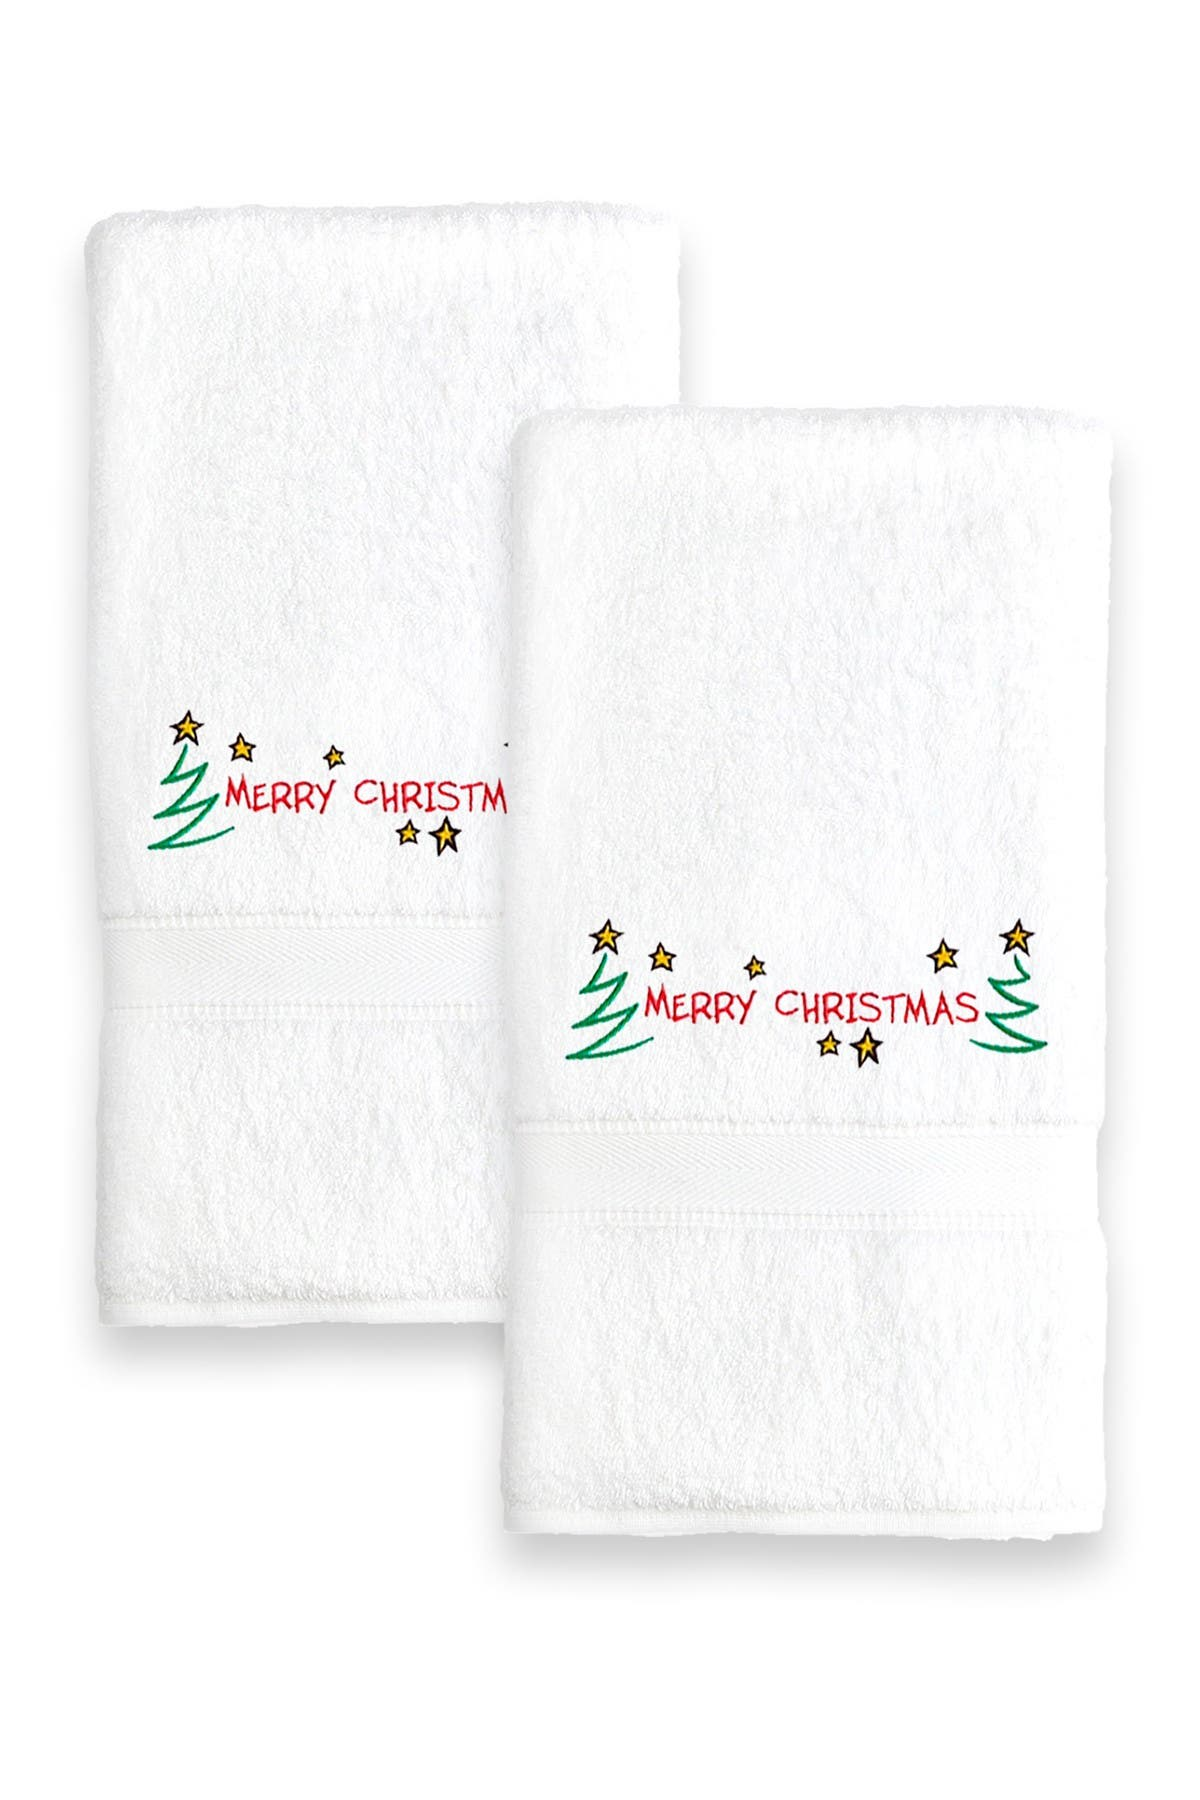 Image of LINUM HOME Merry Christmas Embroidered Hand Towels - Set of 2